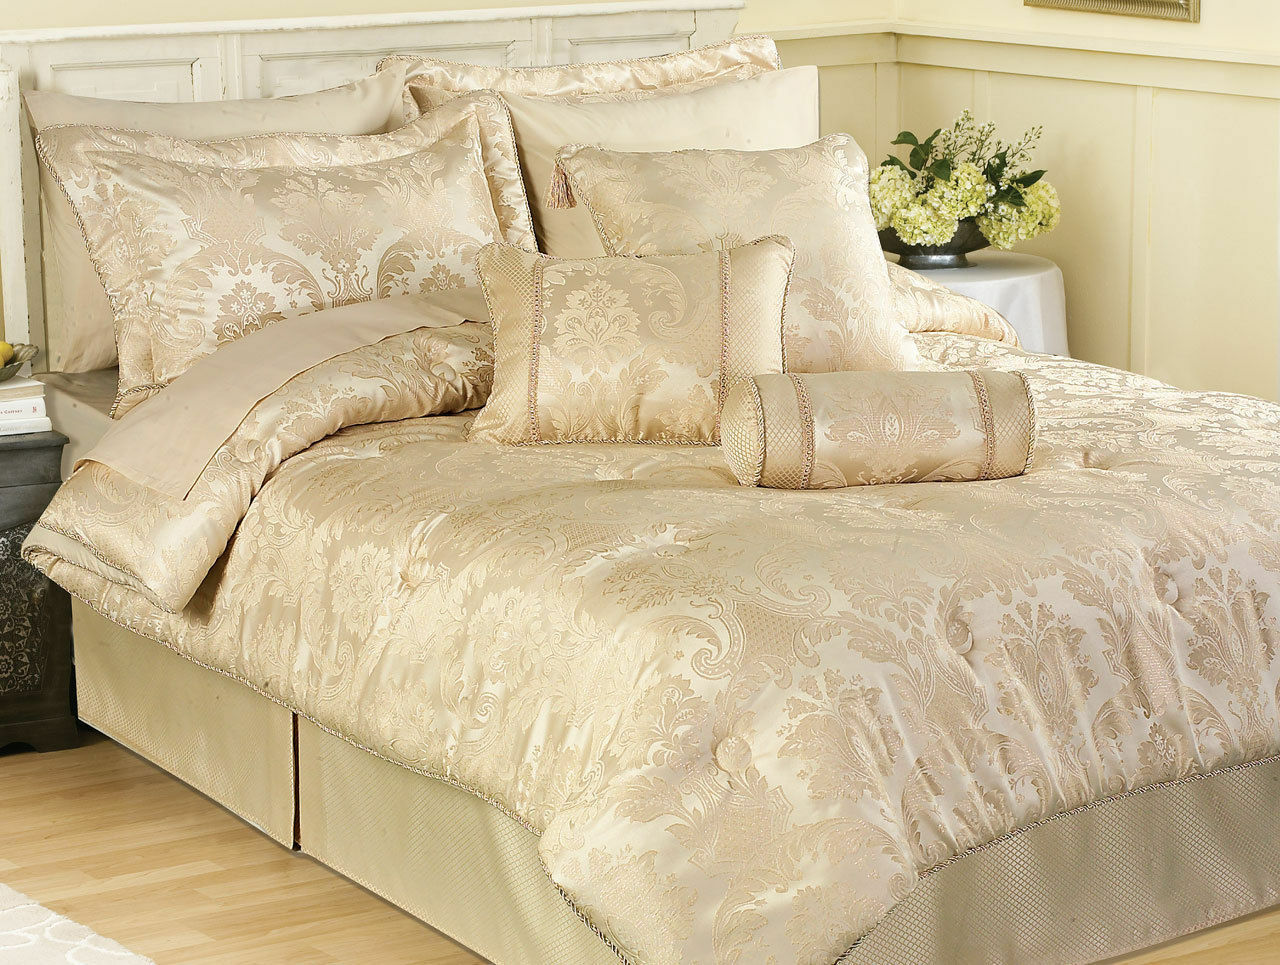 Carrington Ivory Cream Luxury Comforter Duvet Bed Linen All Größes